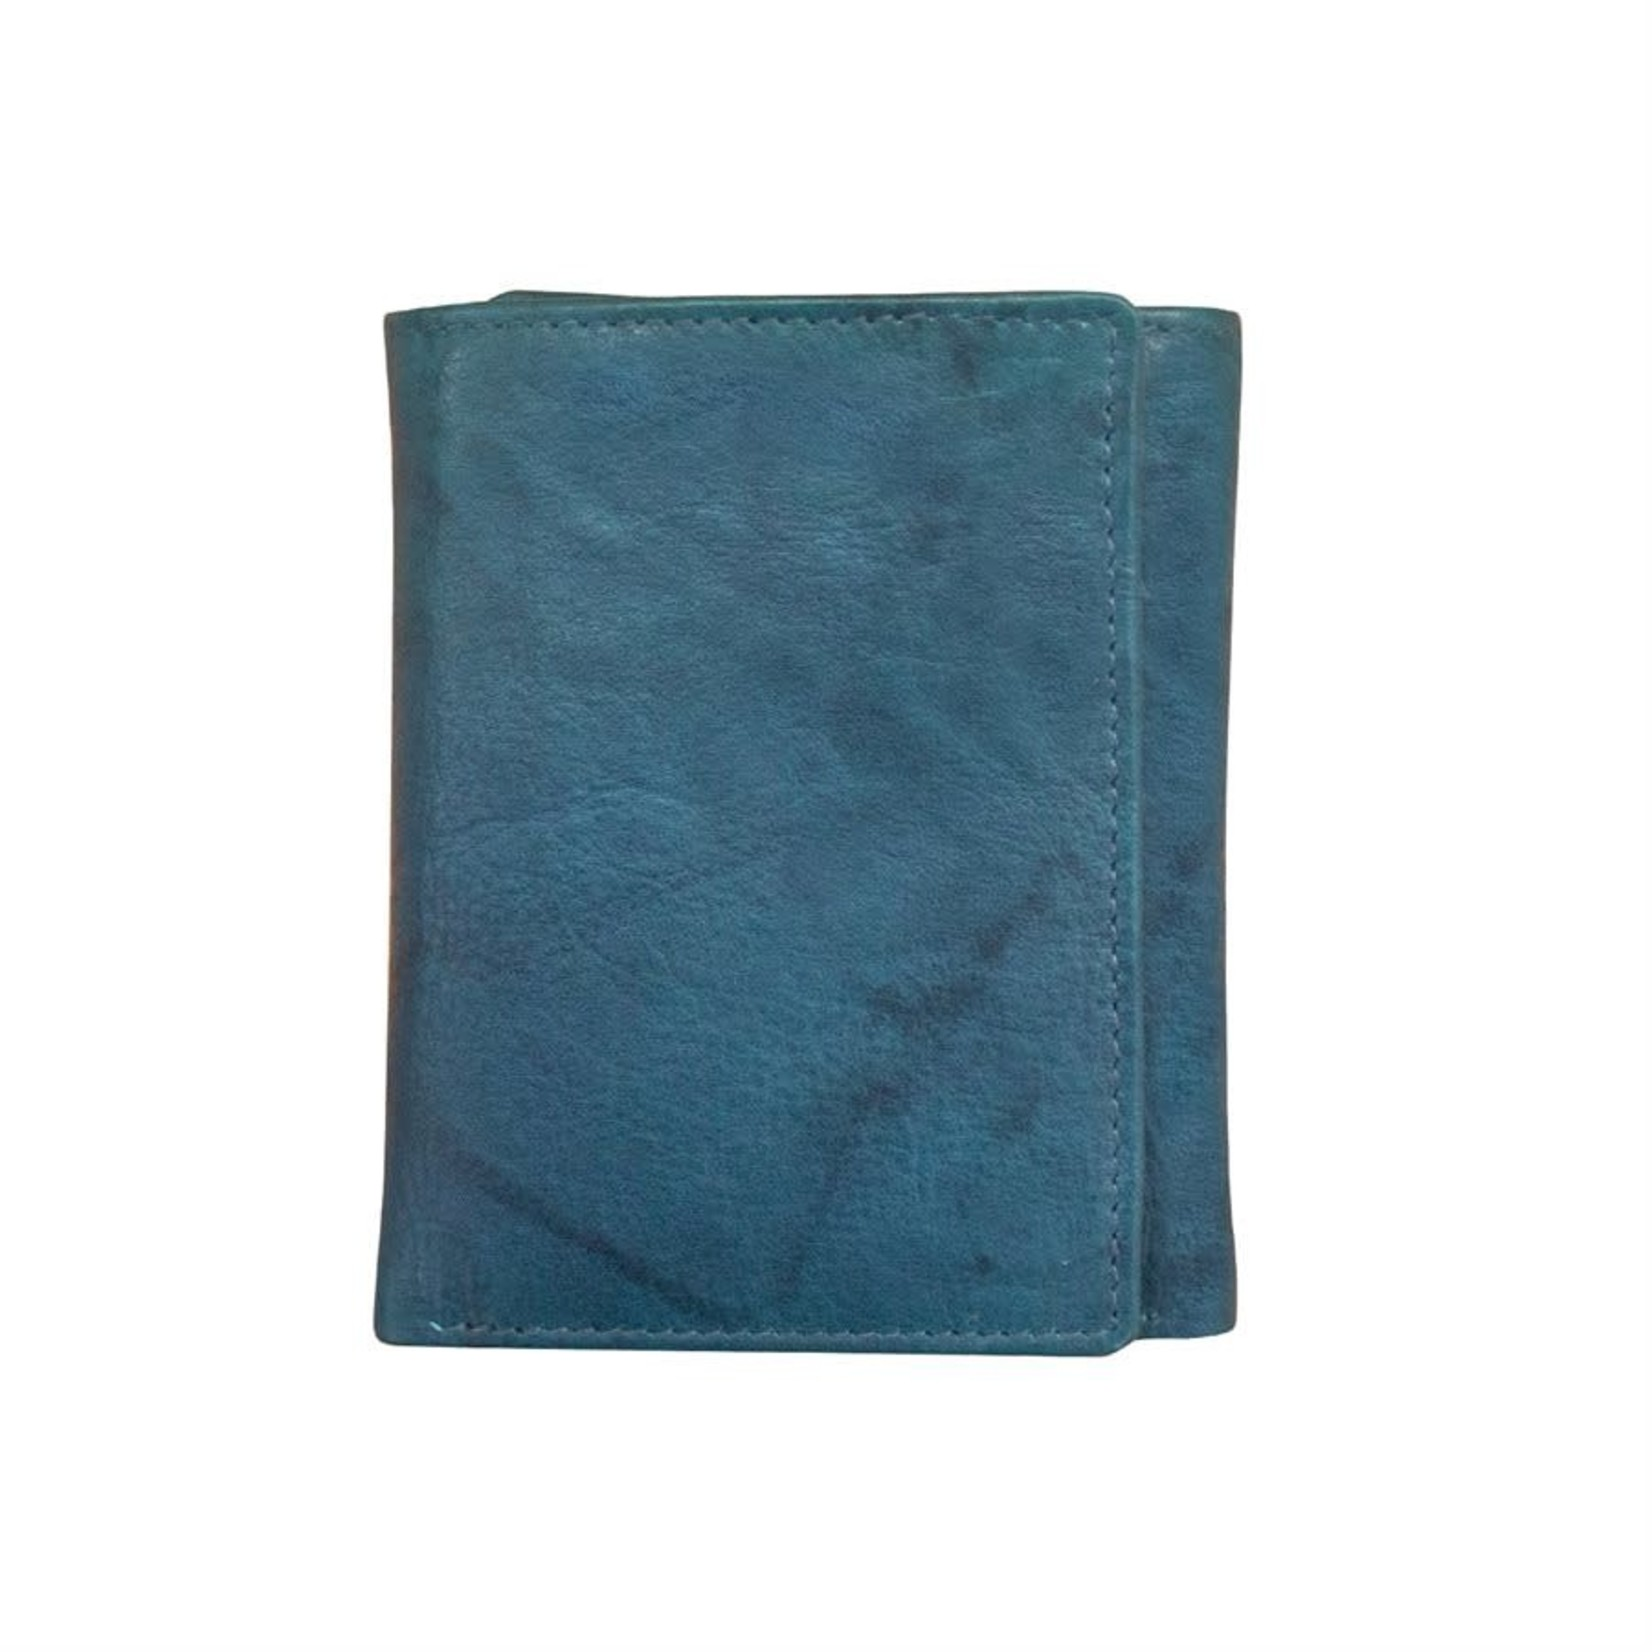 Leather Handbags and Accessories 7730 Jeans Blue - RFID TriFold Wallet